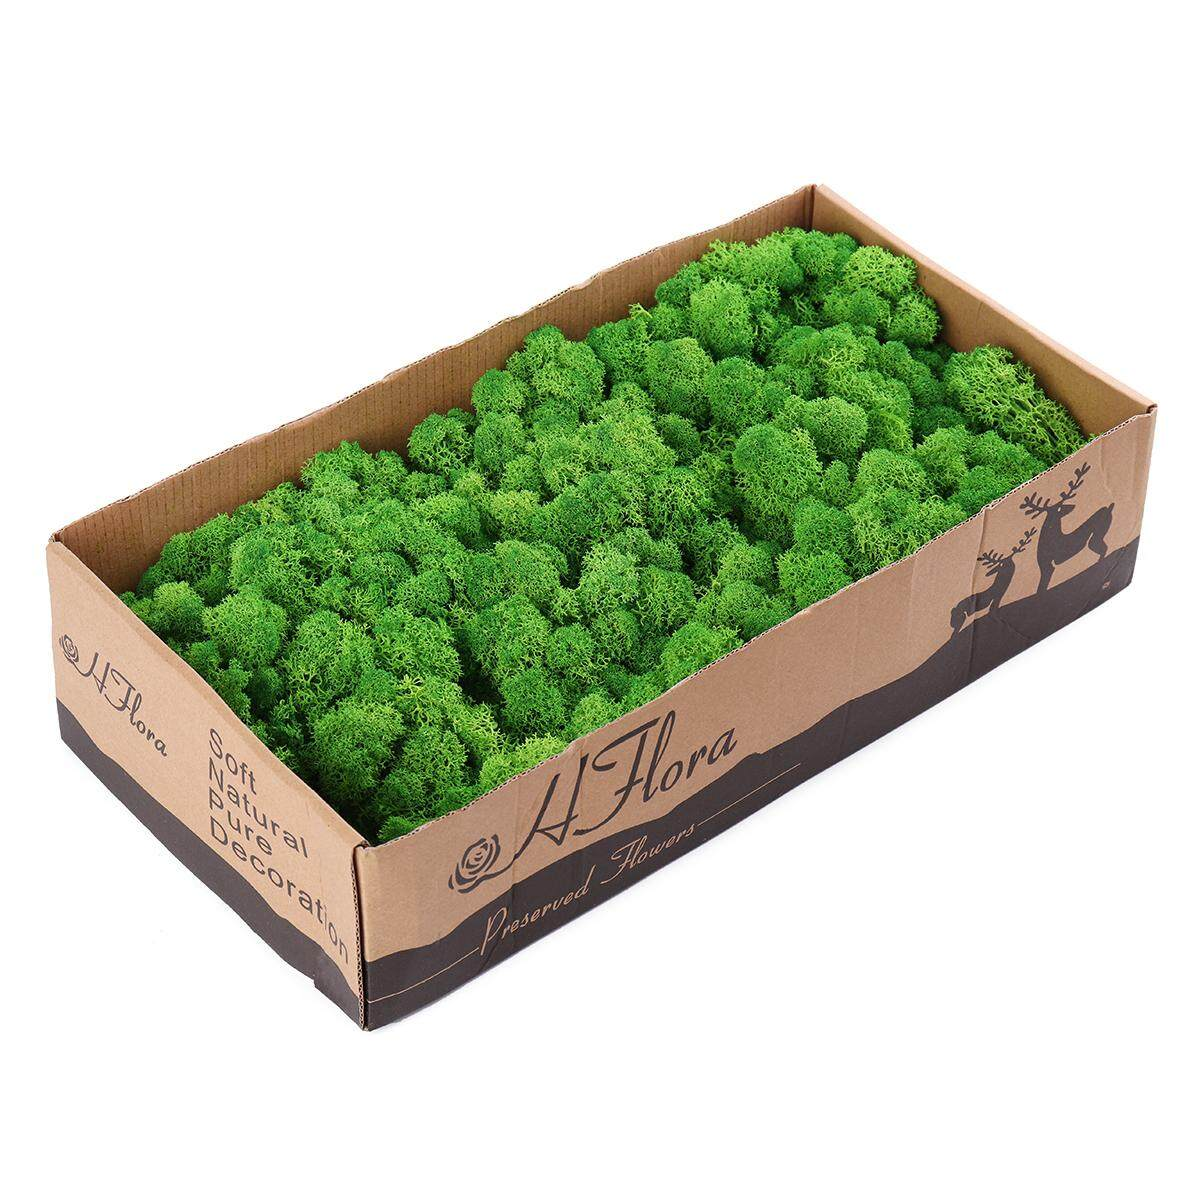 Natural Decoration Norwegian Reindeer Moss Preserved Dried Craft Flower 500g Box